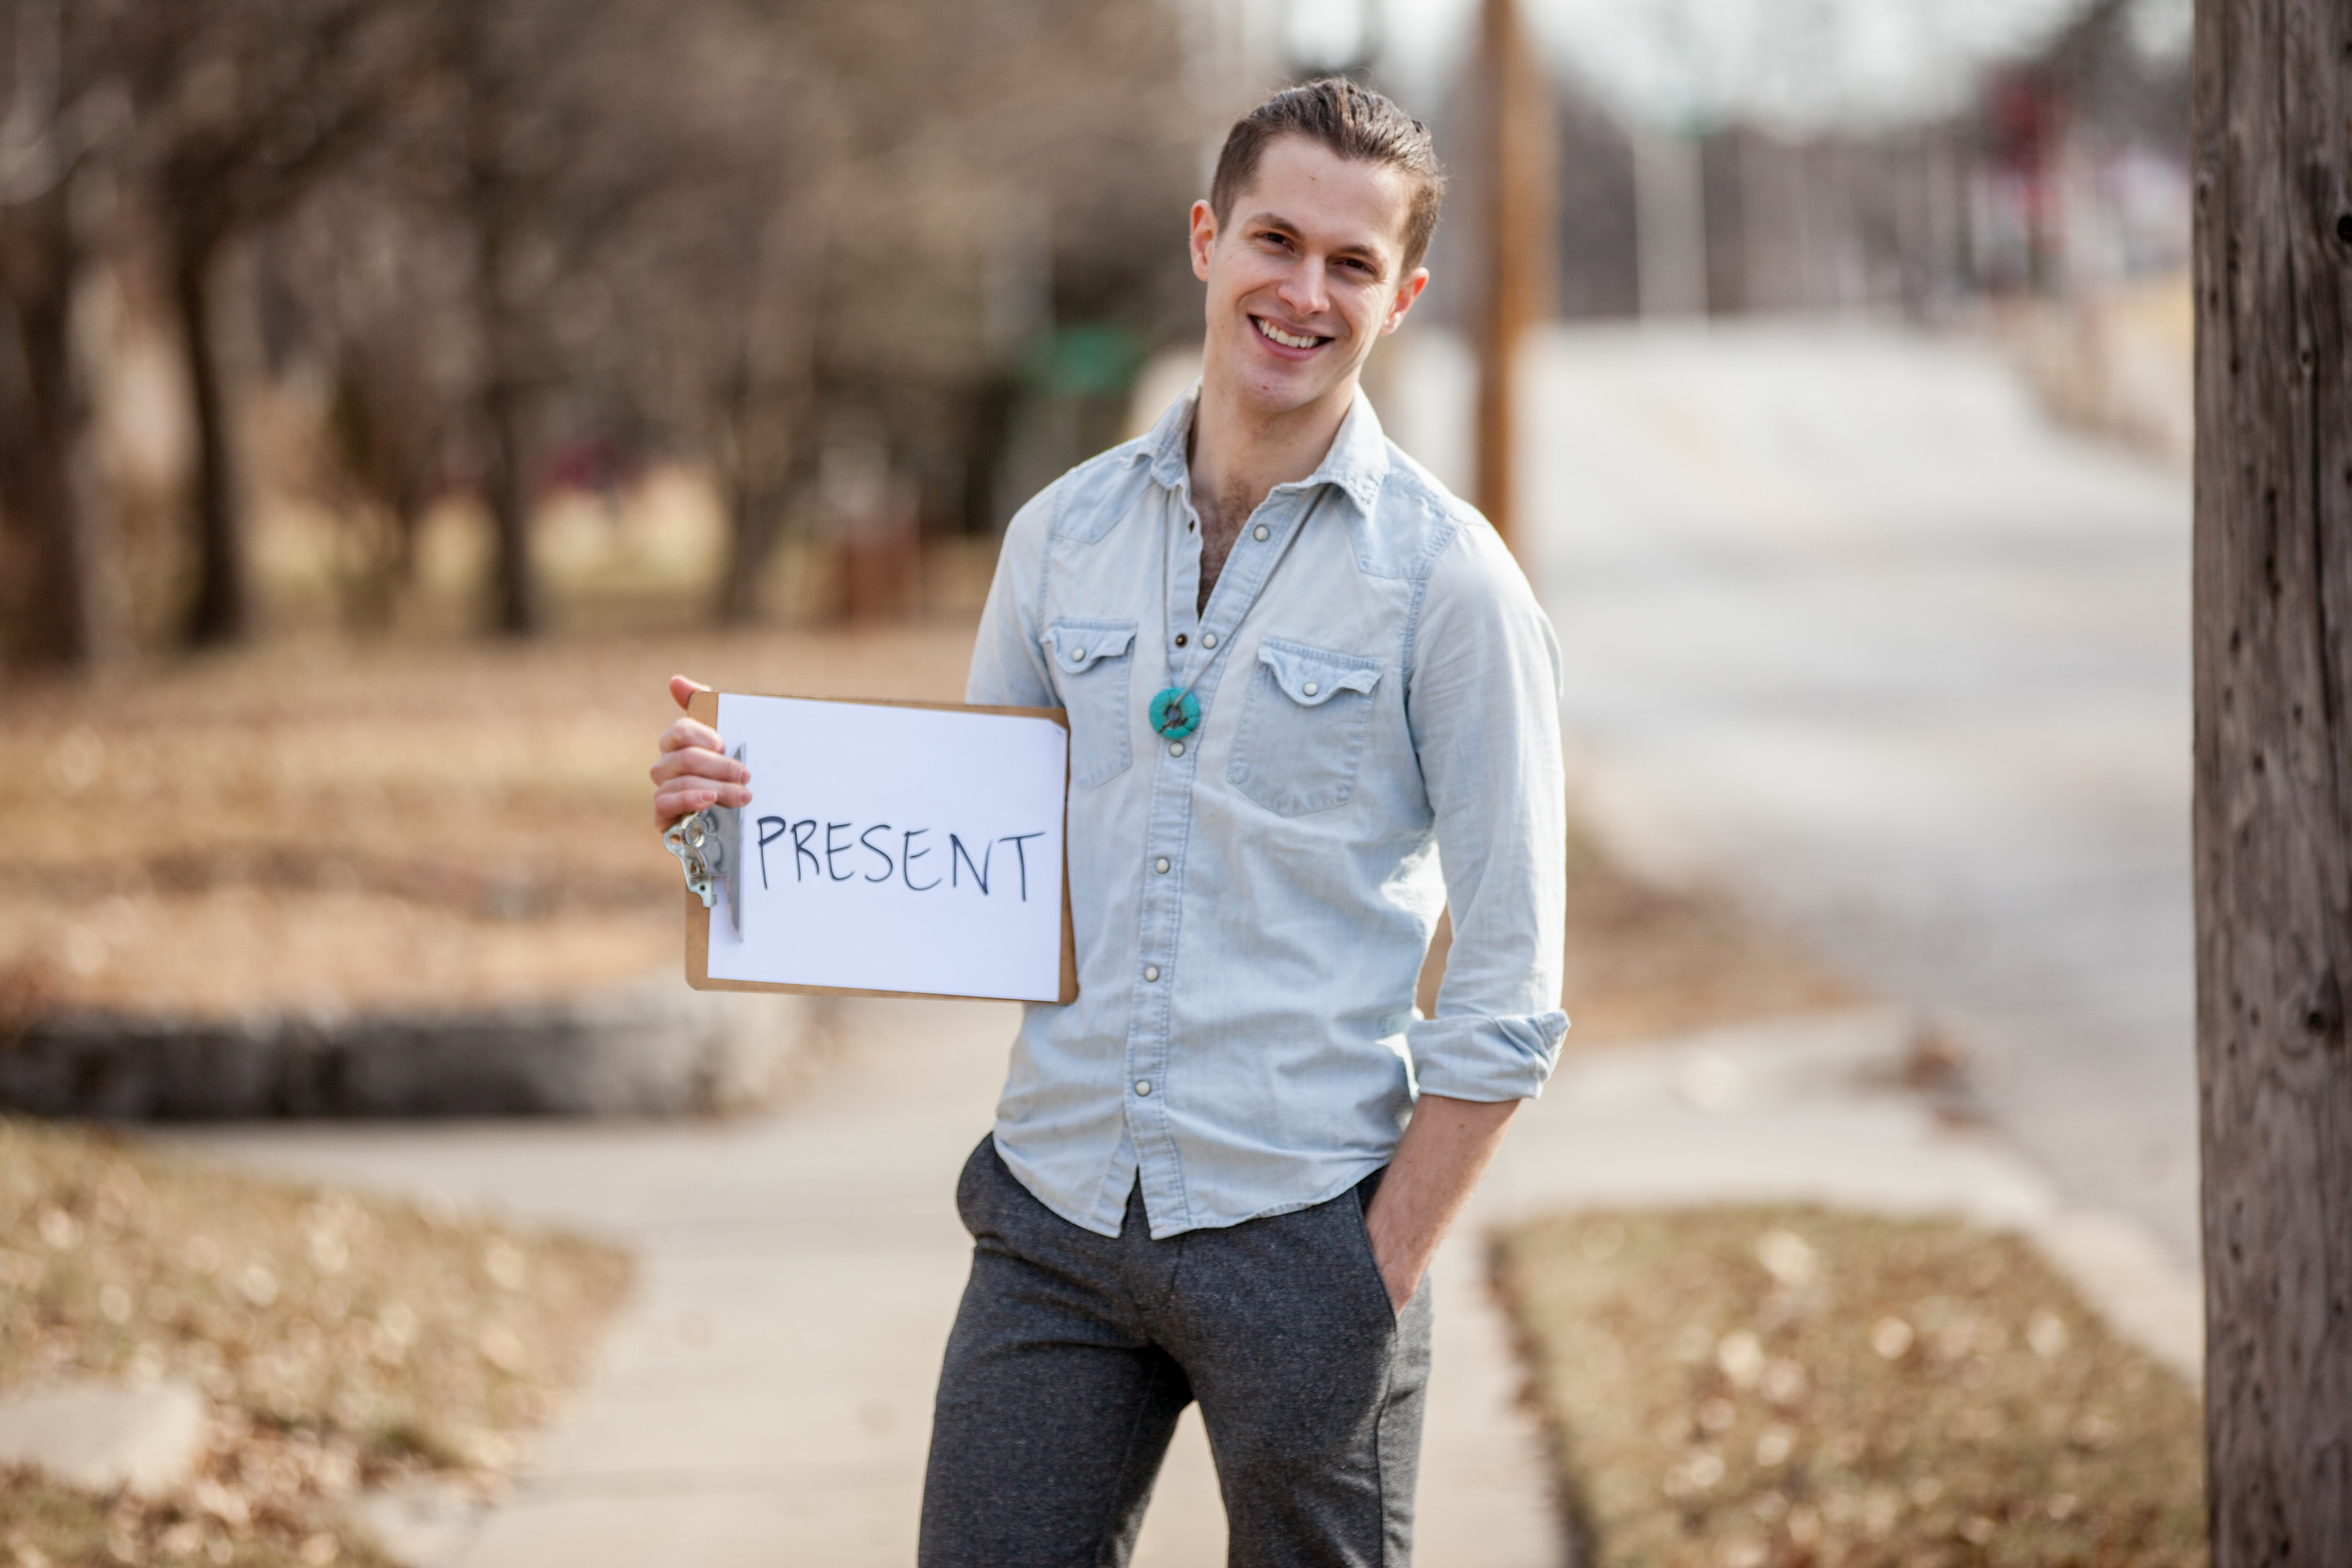 Man holding a sign that says present.